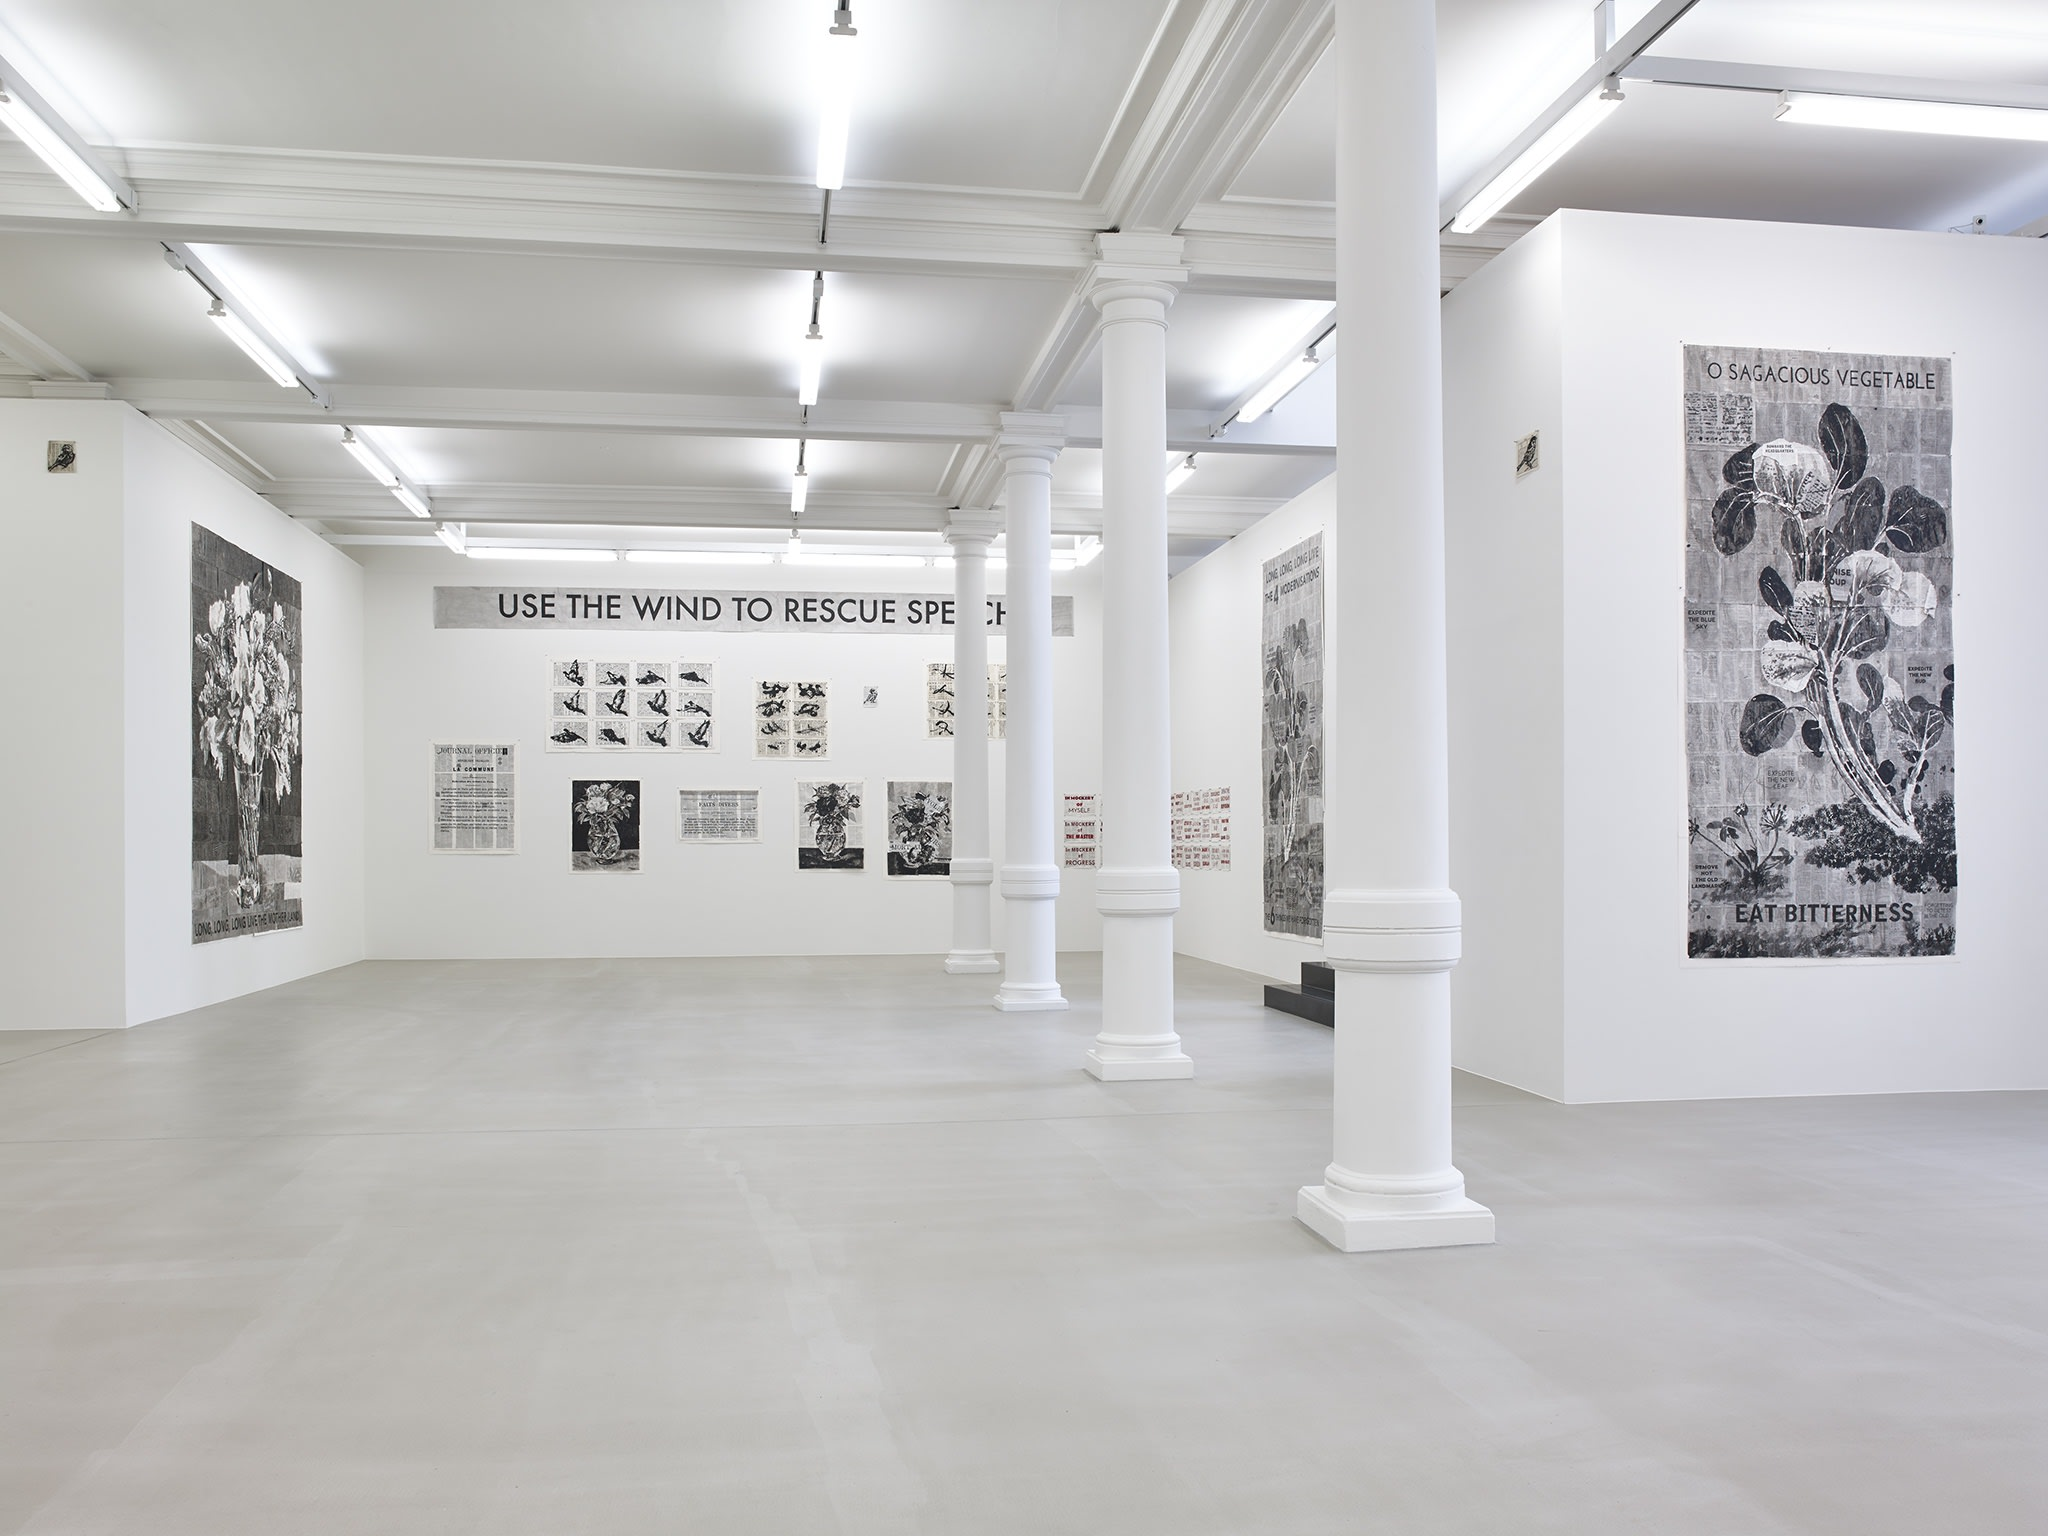 In a large white space with columns, many black and white paintings hang, of various sizes, all made up of smaller pieces of paper, except a large sign which hangs overhead, reading: USE THE WIND TO RESCUE SPEECH.